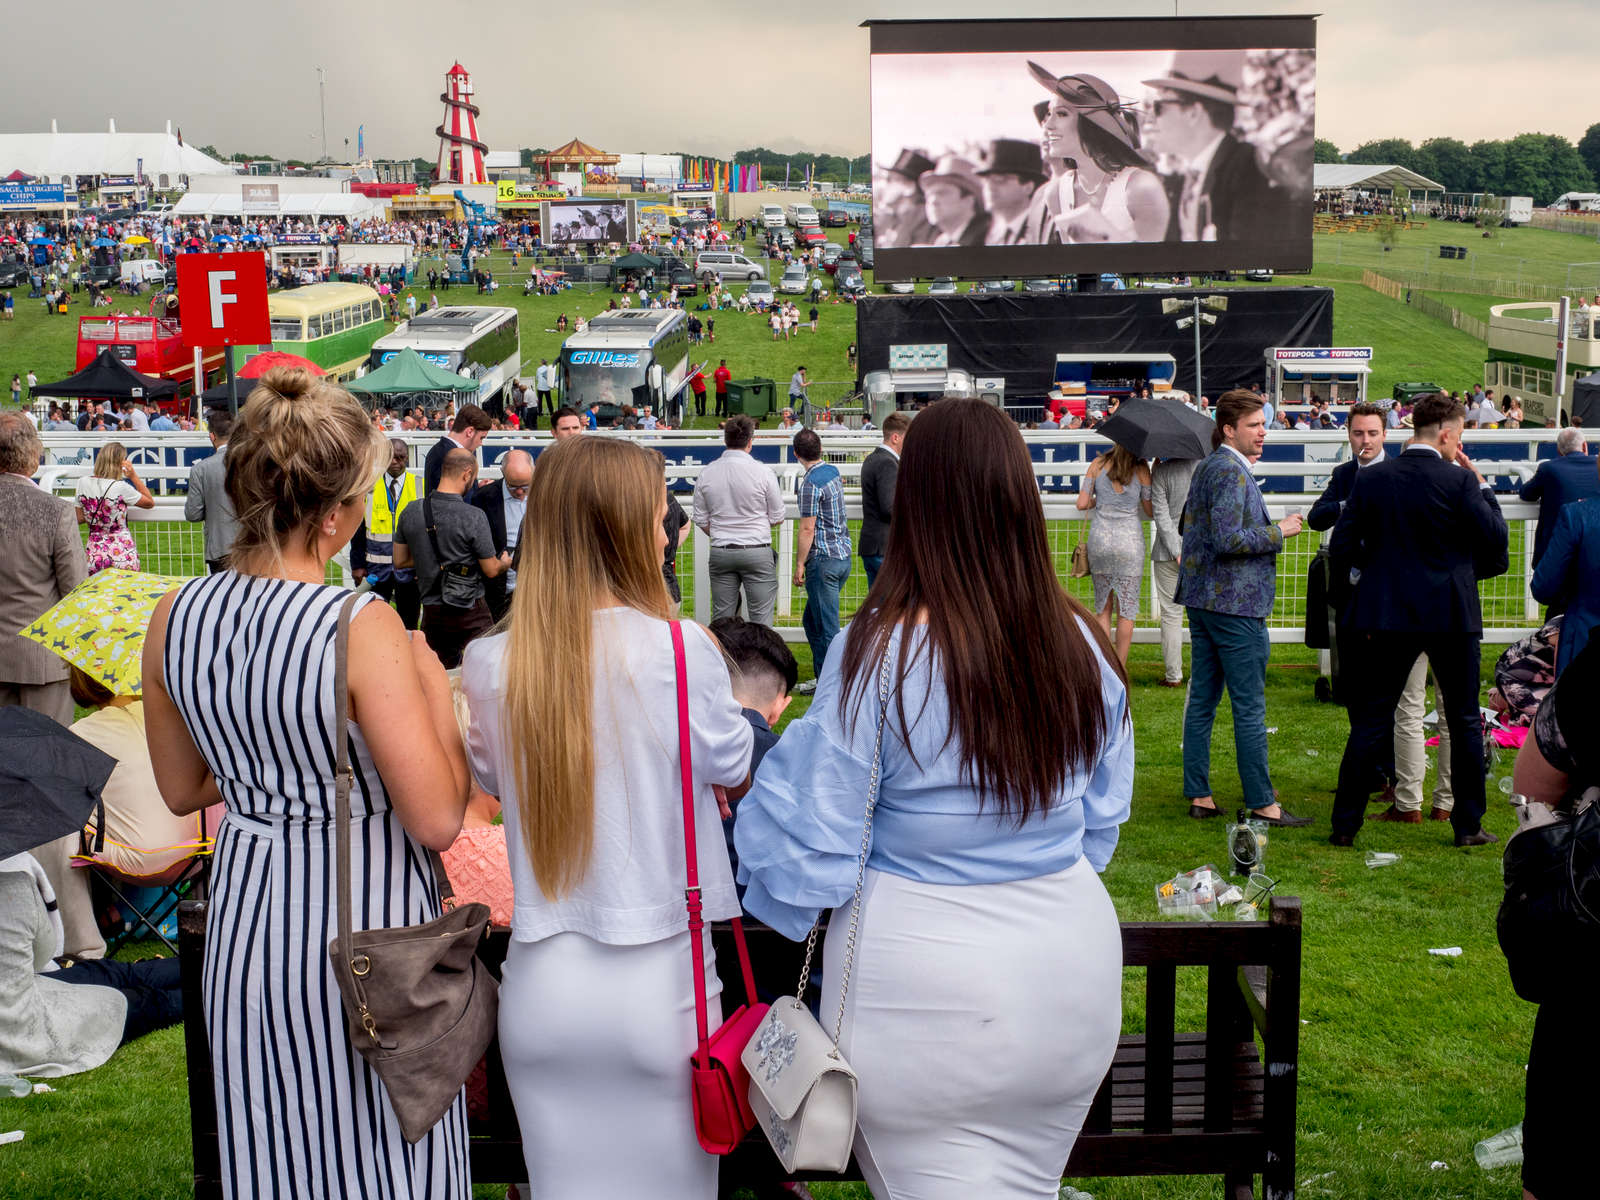 Crowds gather to watch the horse racing on Ladies' Day at Epsom.Ladies' Day is traditionally held on the first Friday of June, a multitude of ladies and gents head to Epsom Downs Racecourse to experience a day full of high octane racing, music, glamour and fashion.